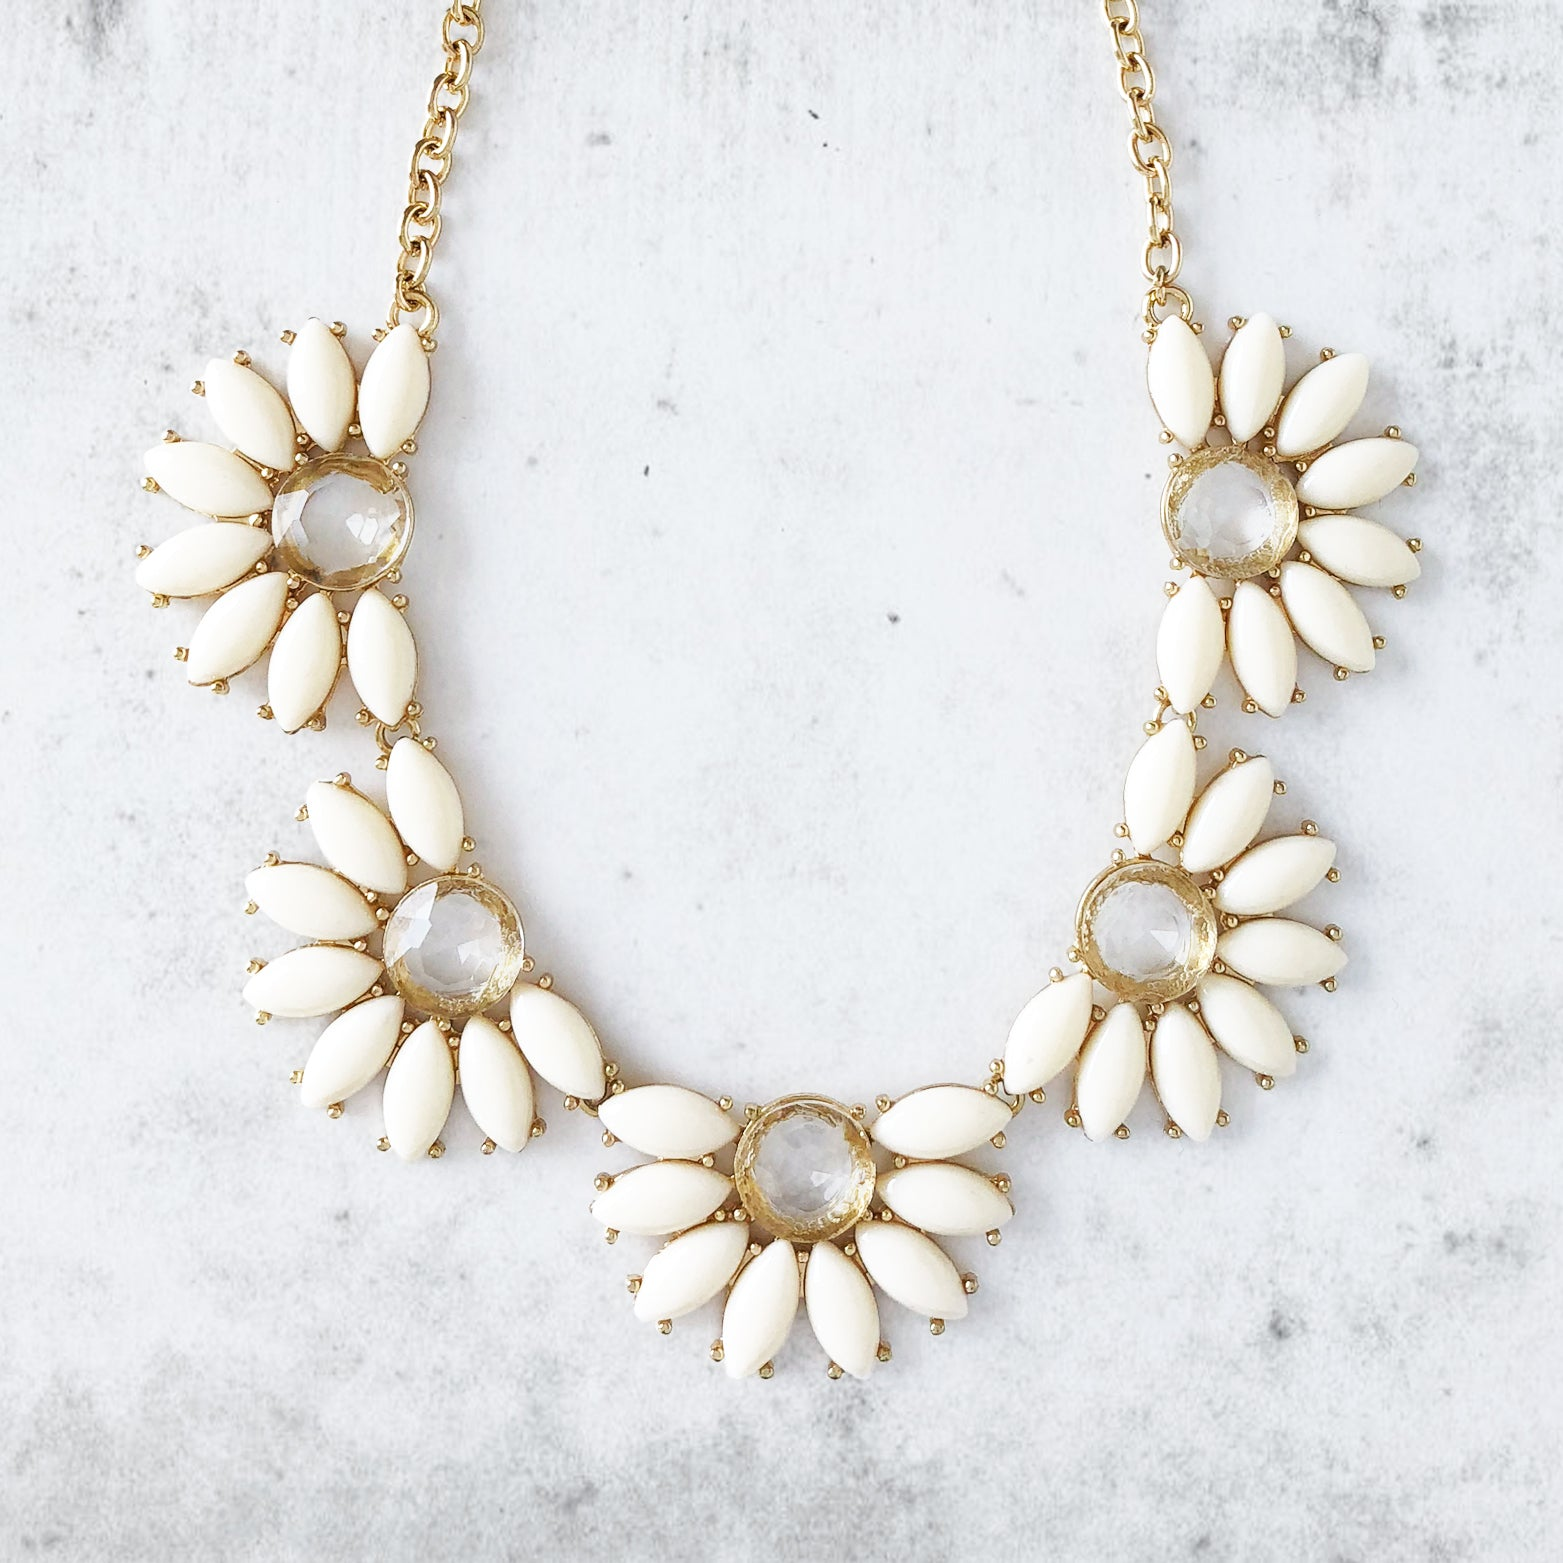 Daisy Jewel Link Necklace - Love, Kuza